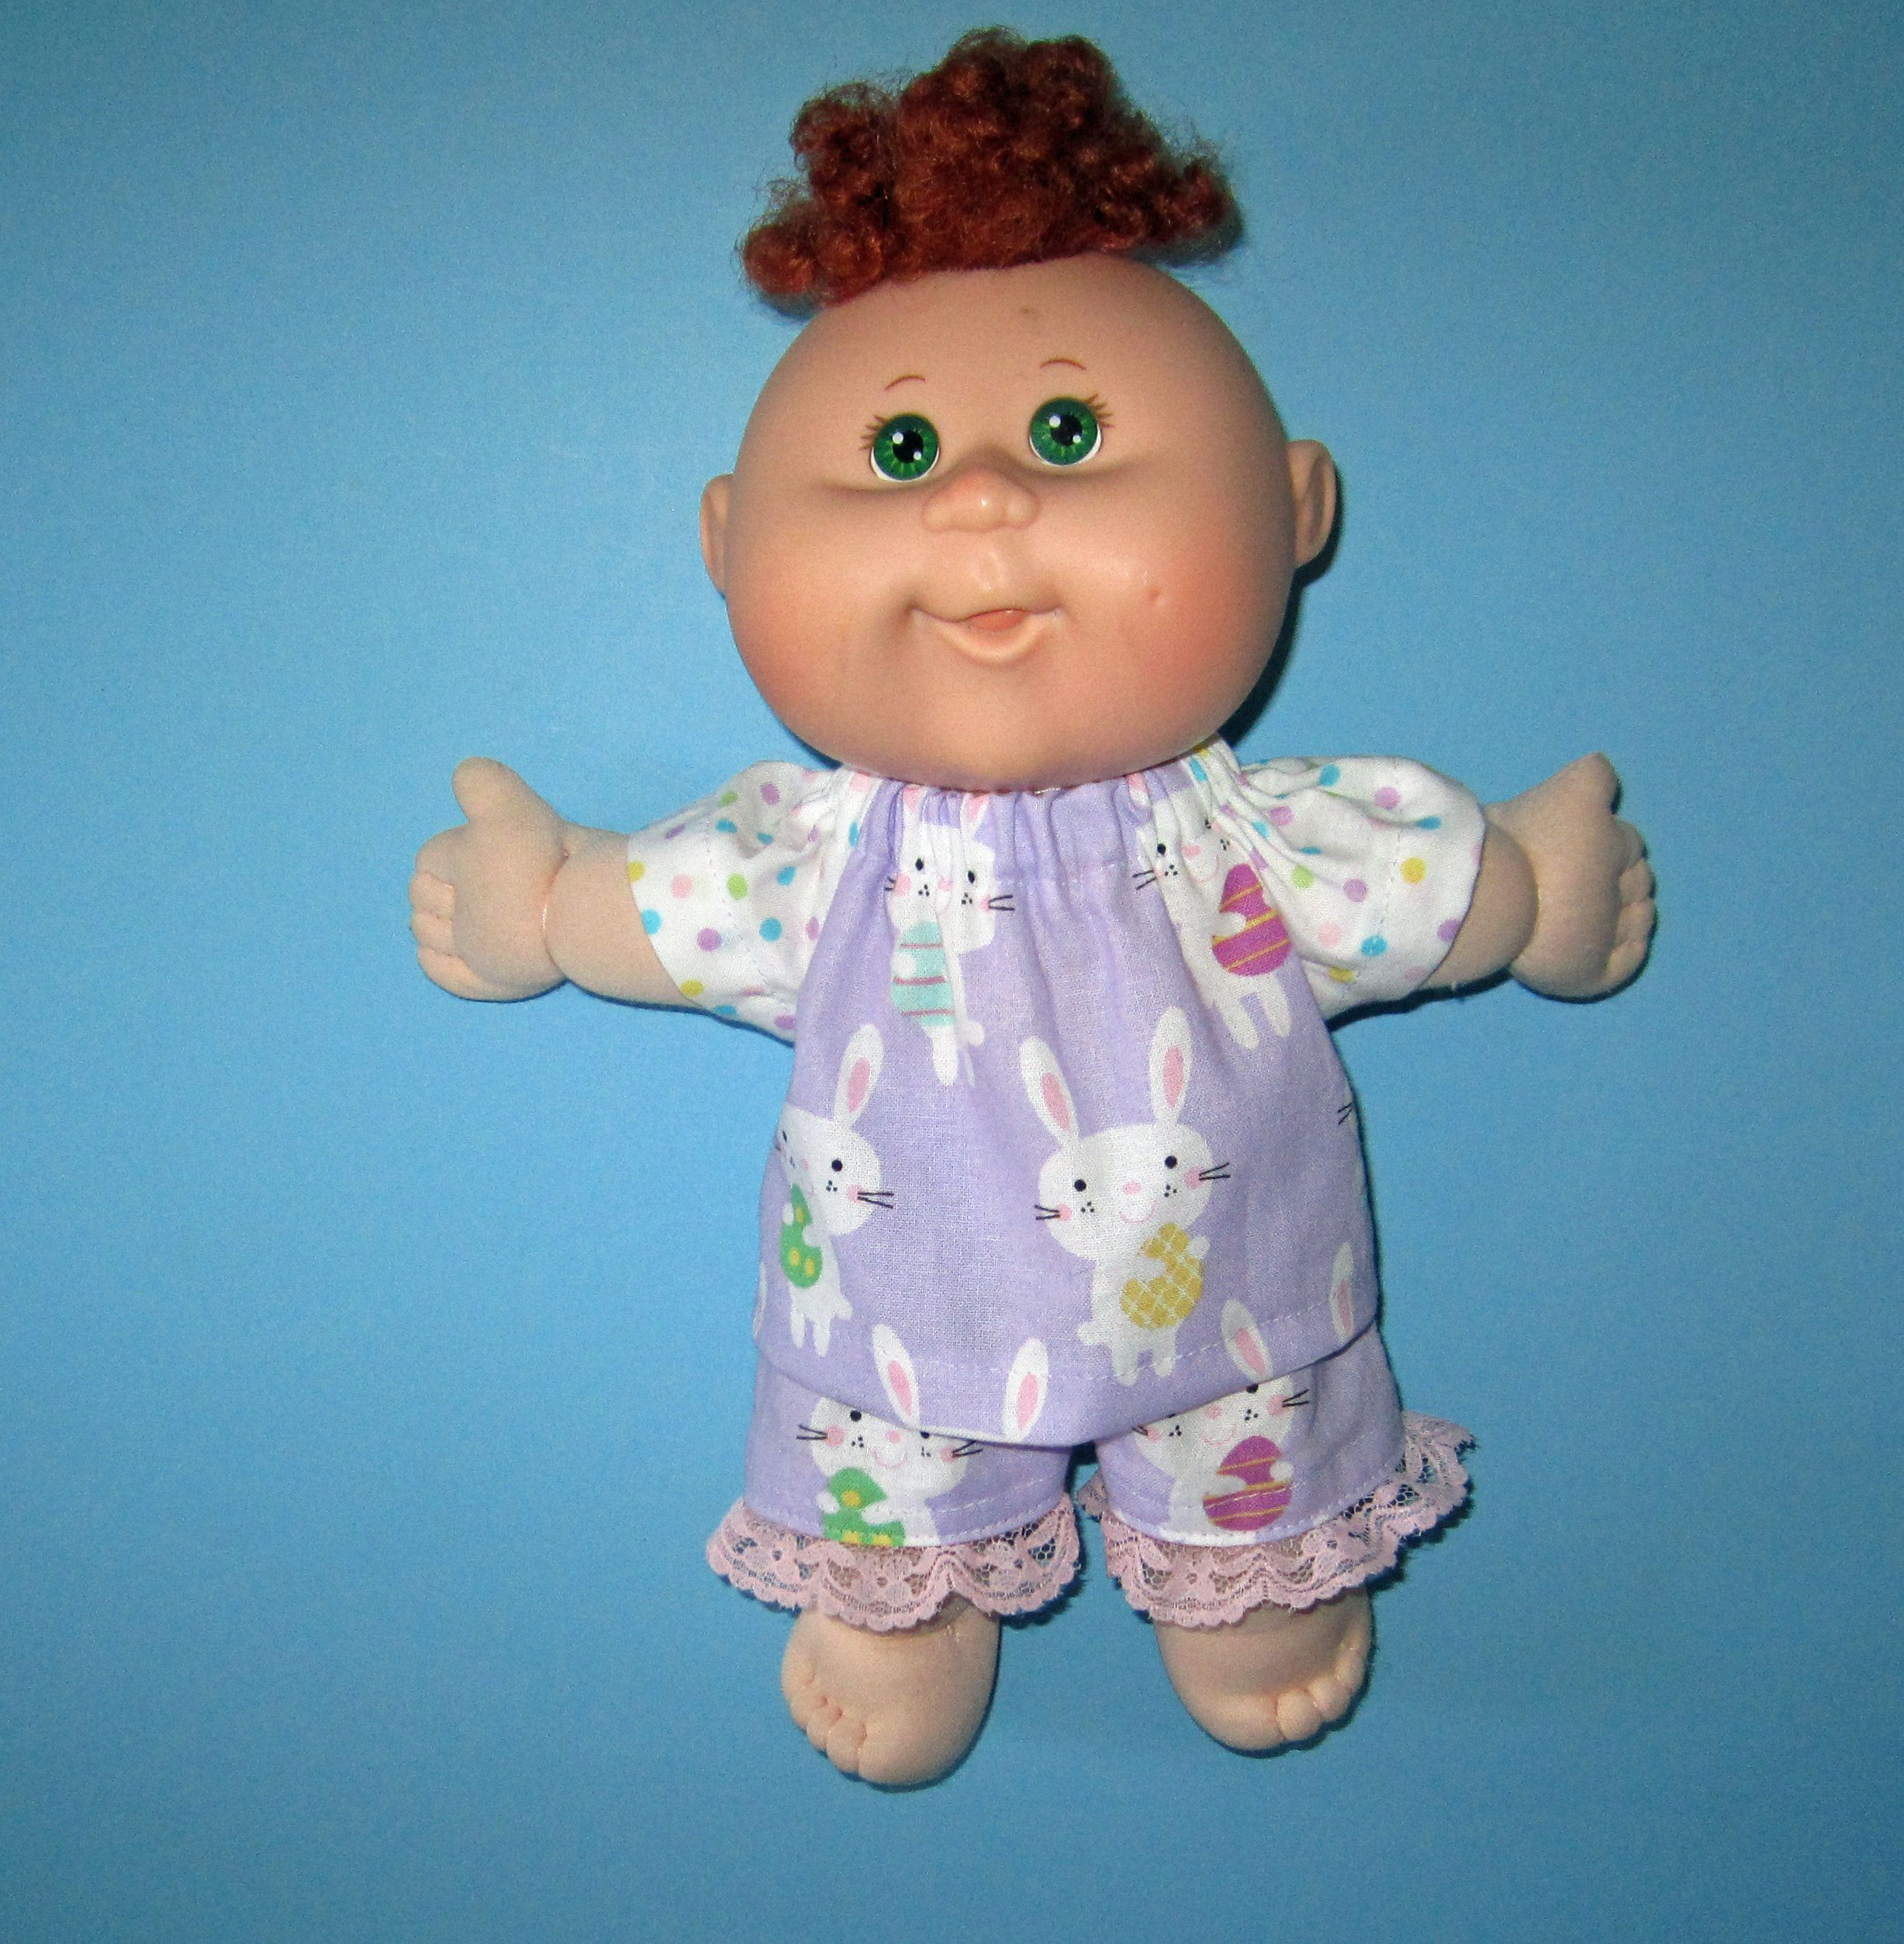 Cabbage Patch Newborn Surprise Doll Clothespurple Easter Etsy Cabbage Patch Babies Purple Easter Cabbage Patch